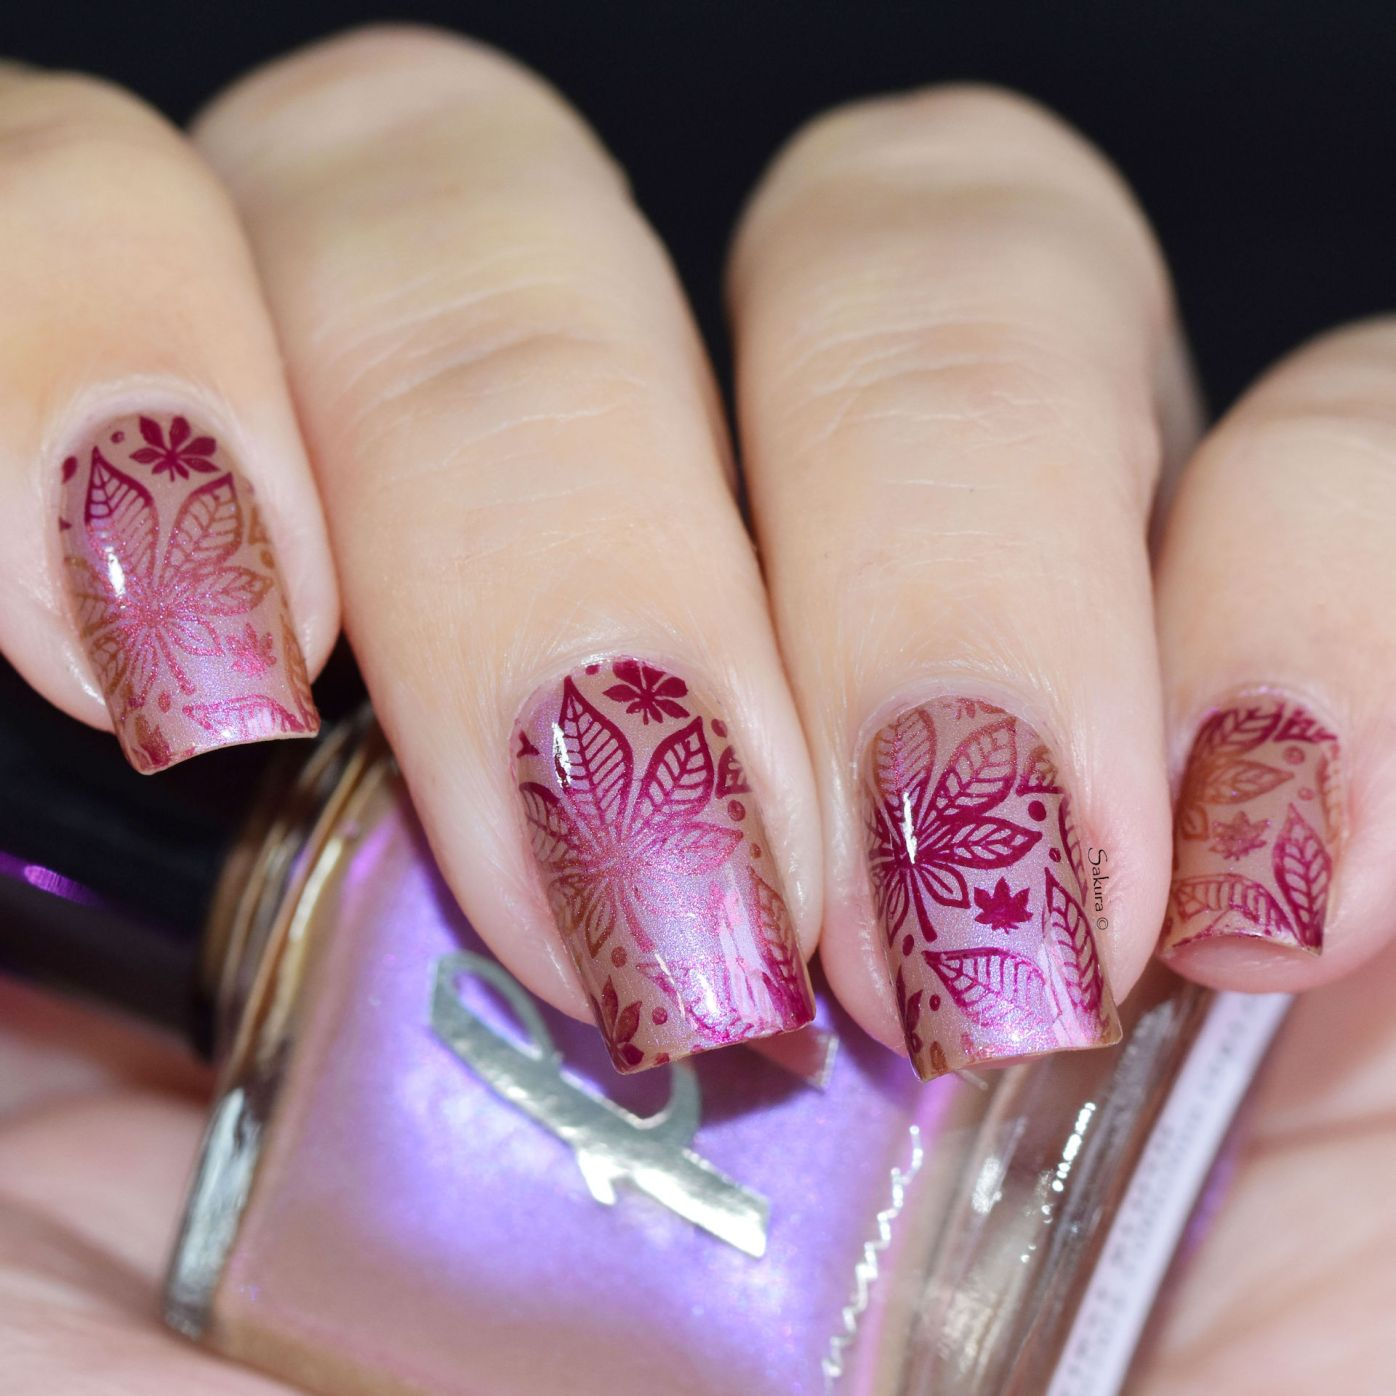 NAIL ART AUTOMNE ROSE 2